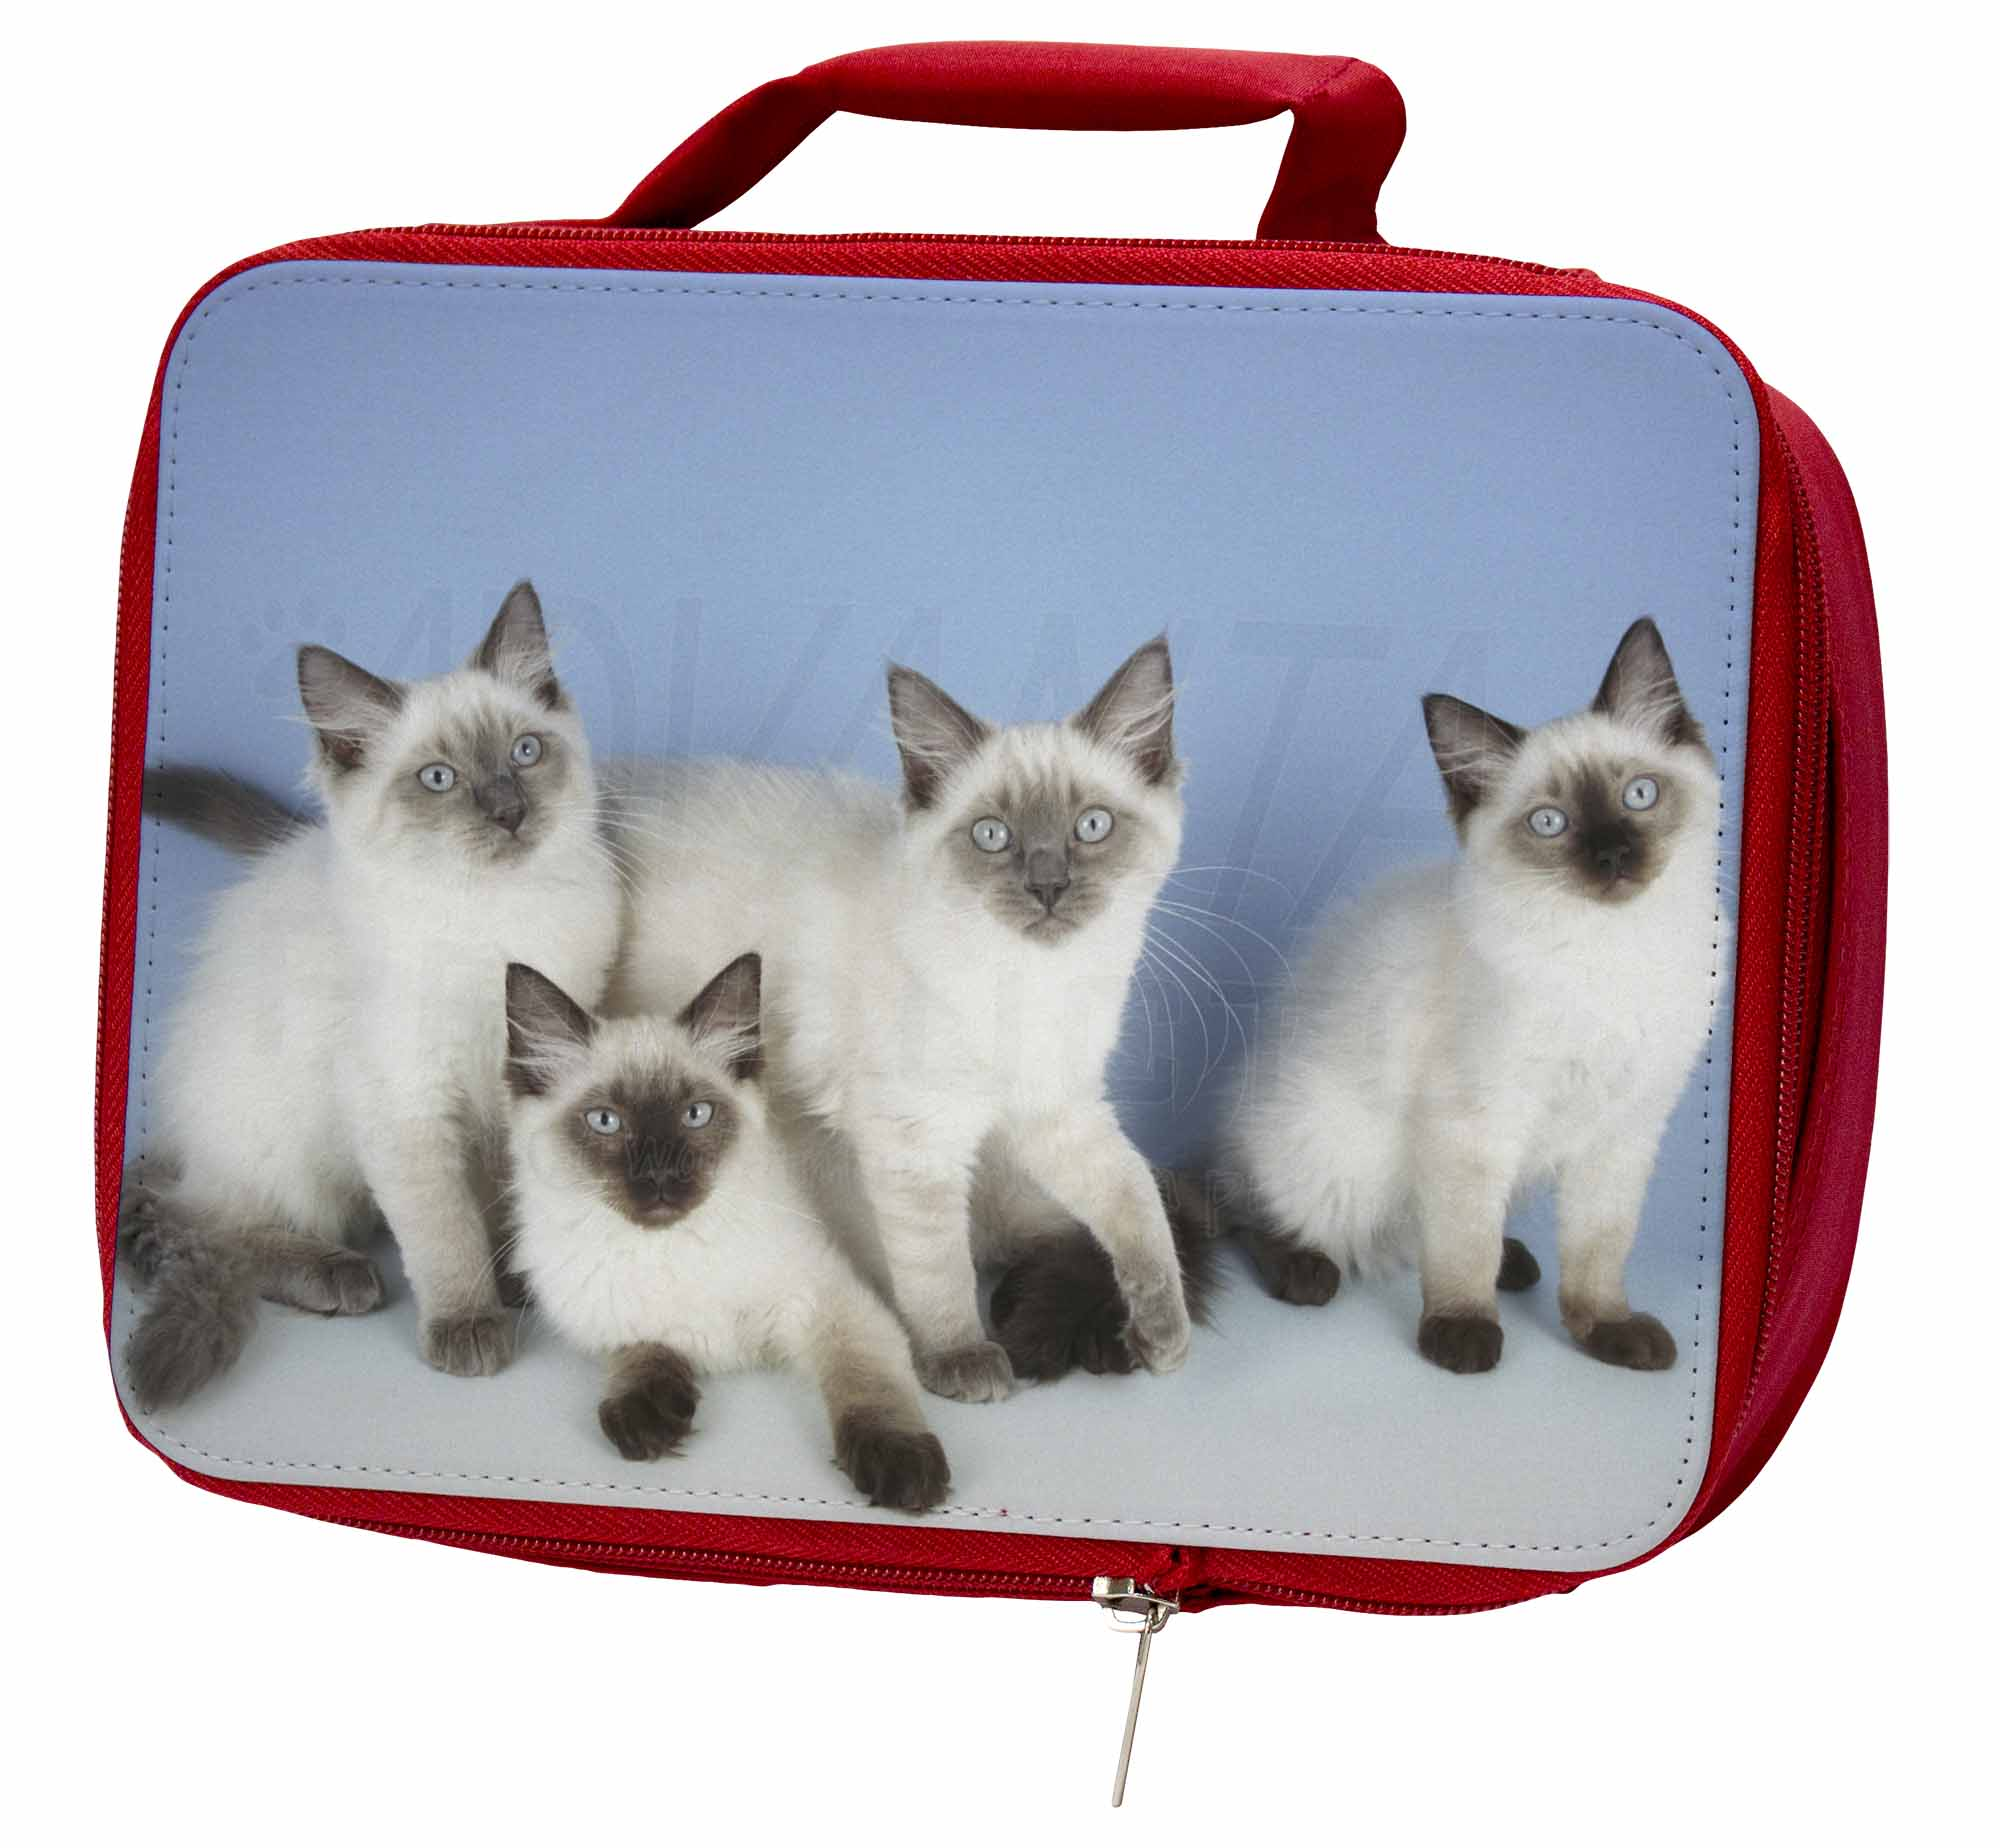 Ragdoll Kittens Red Insulated Red Kittens School Lunch Box/Picnic Bag, AC-19LBR fe93fe